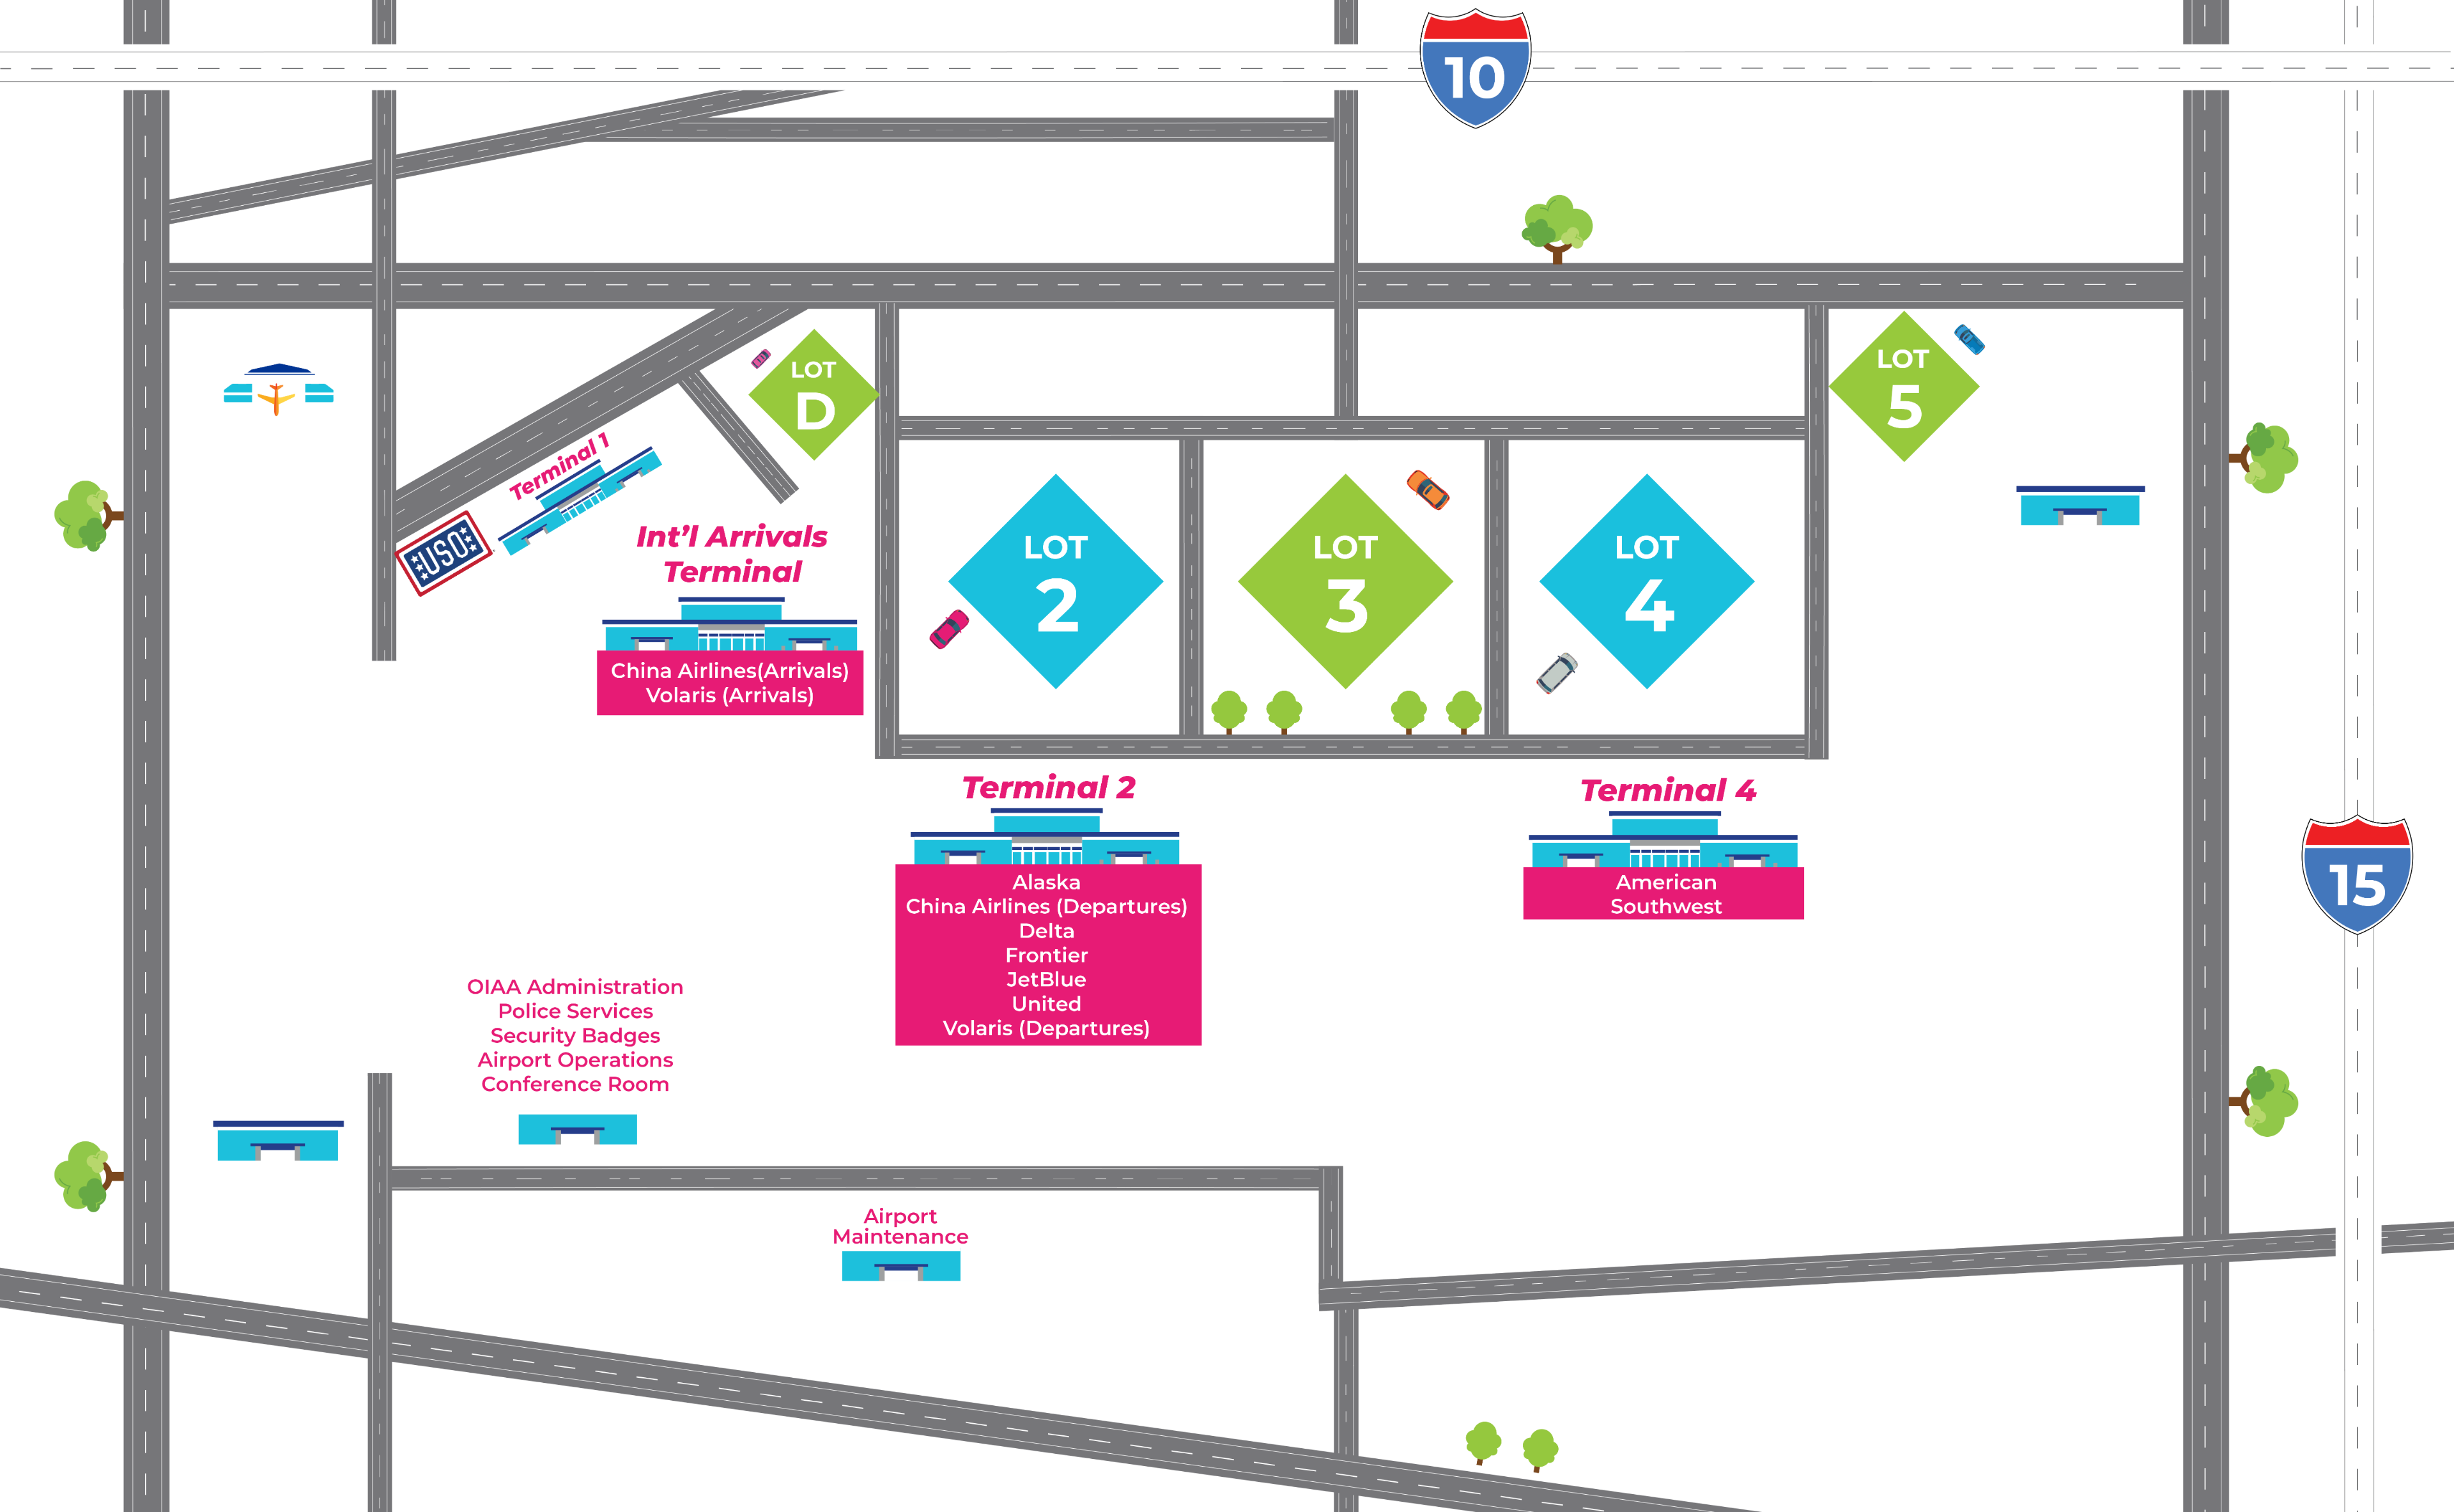 Ontario Airport parking map